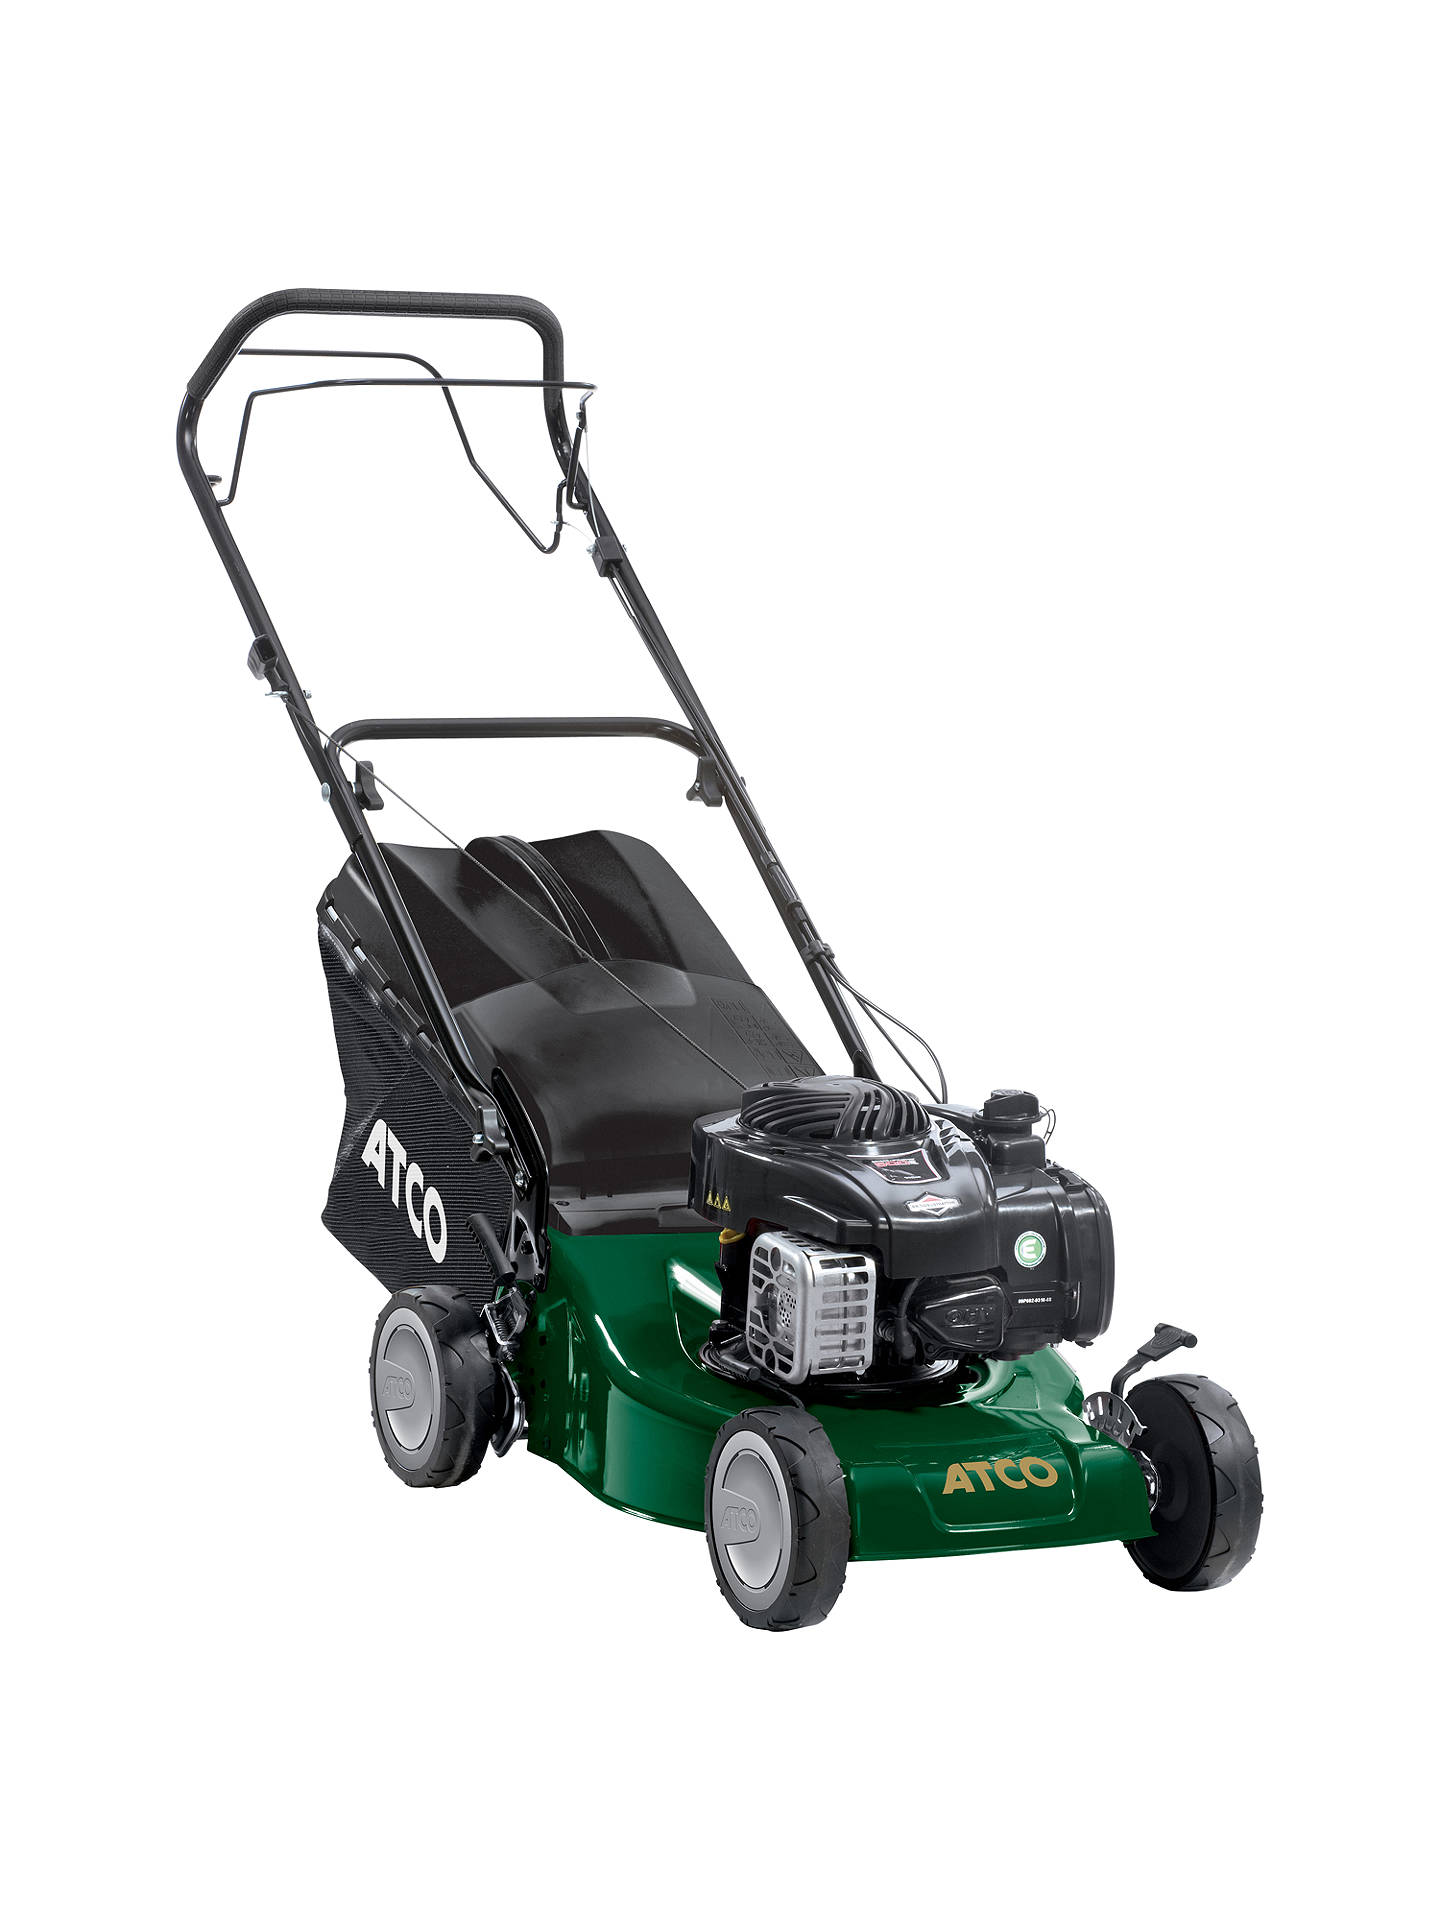 BuyAtco Quattro 16S 41cm Self-propelled Petrol Lawnmower Online at johnlewis.com